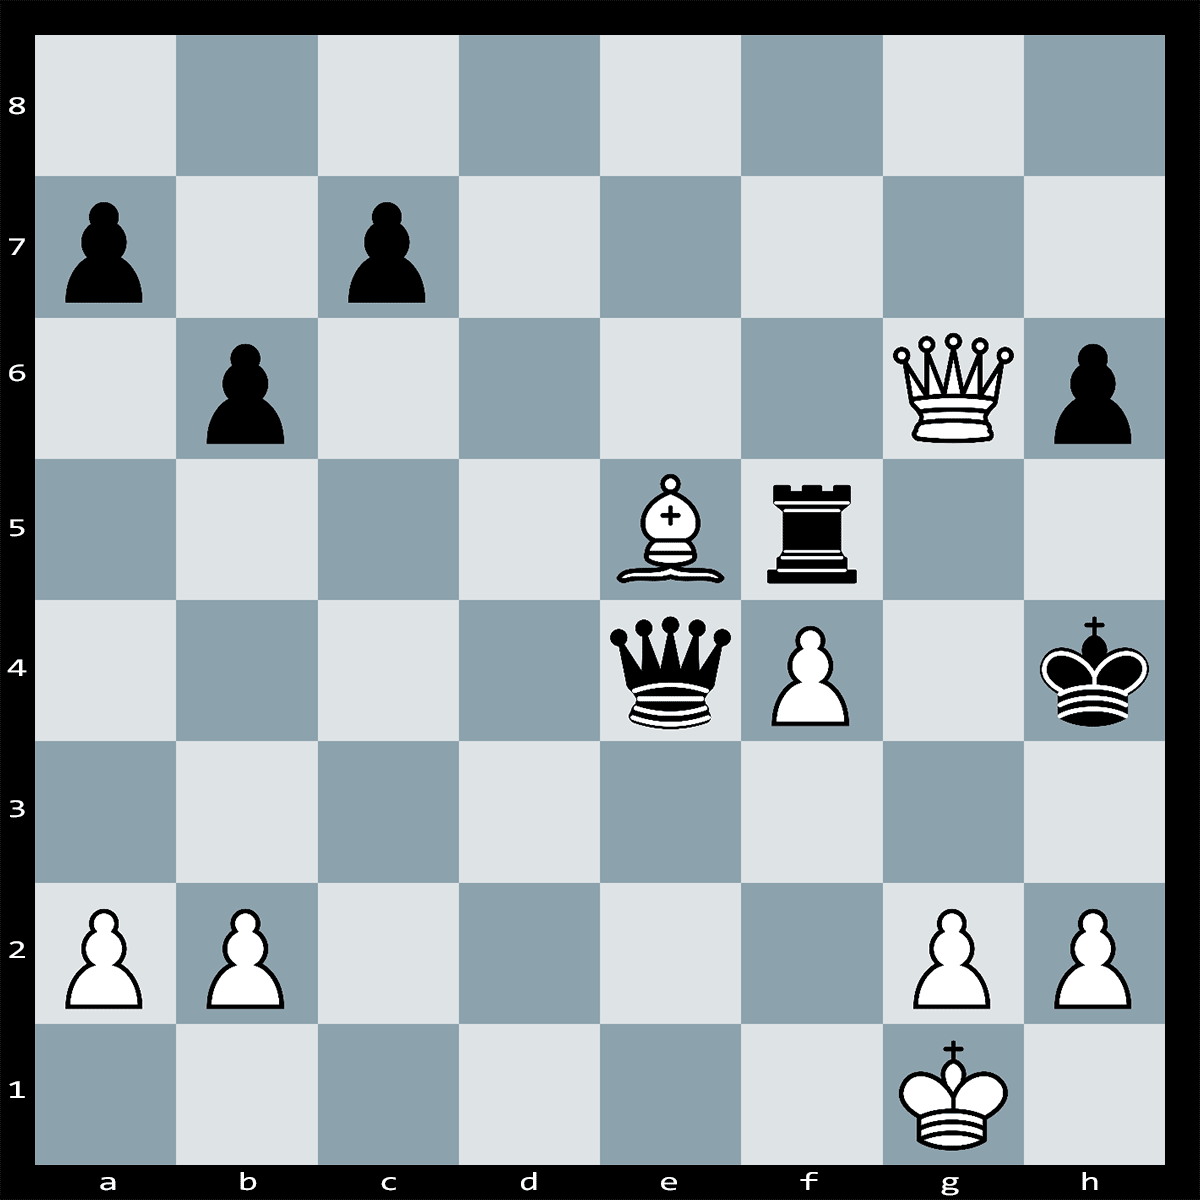 Chess Puzzle #158 - Find checkmate in three moves, white to play.